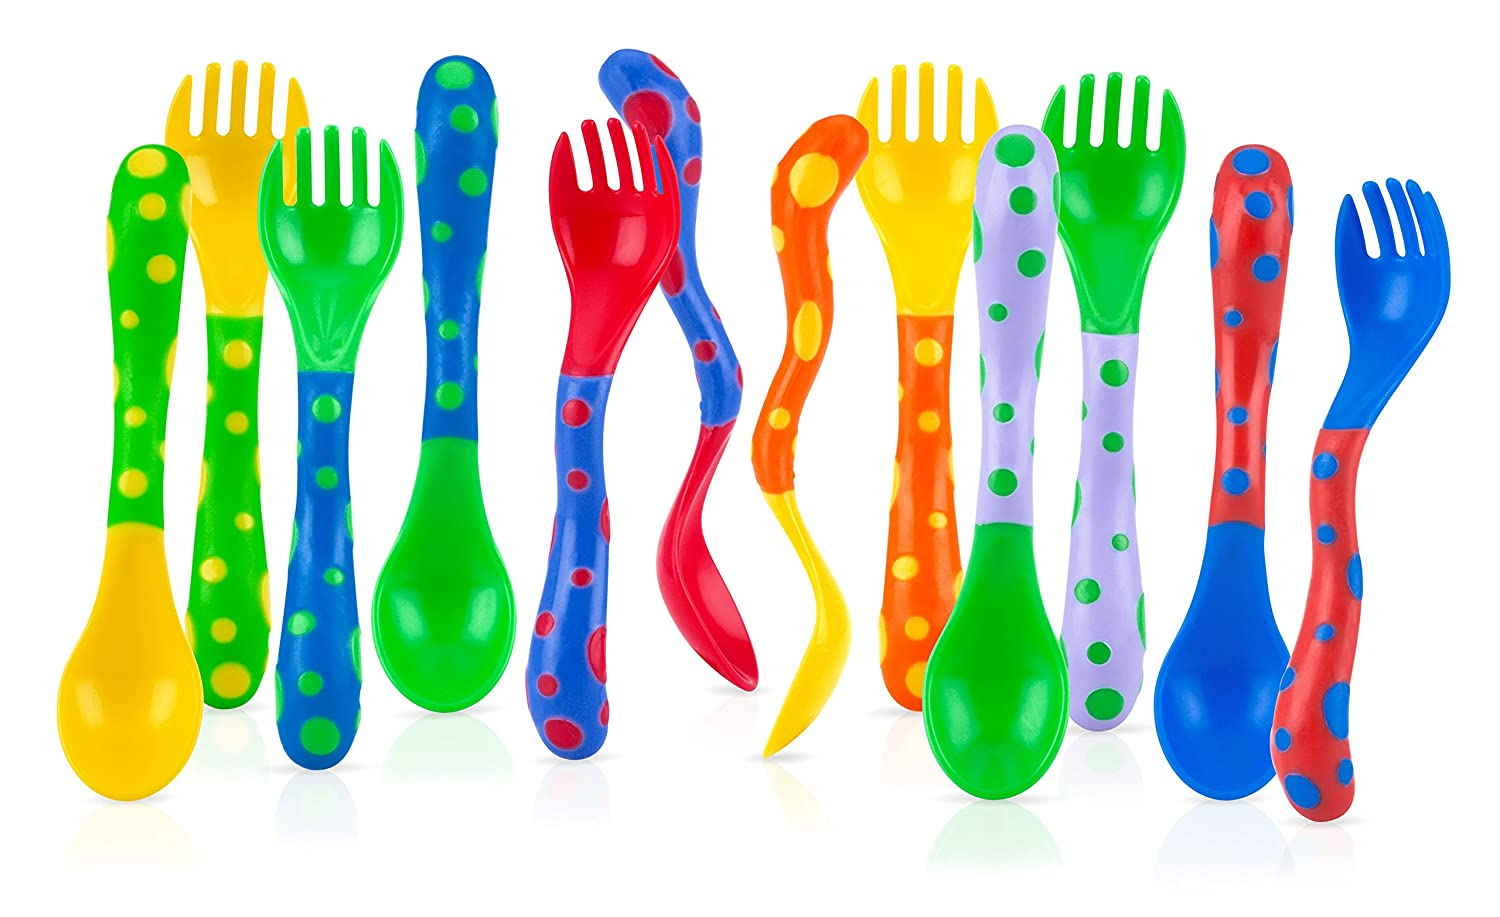 Nuby 4-Pack Spoons and Forks (2 Each), Colors May Vary Luv N Care/NUBY 5251